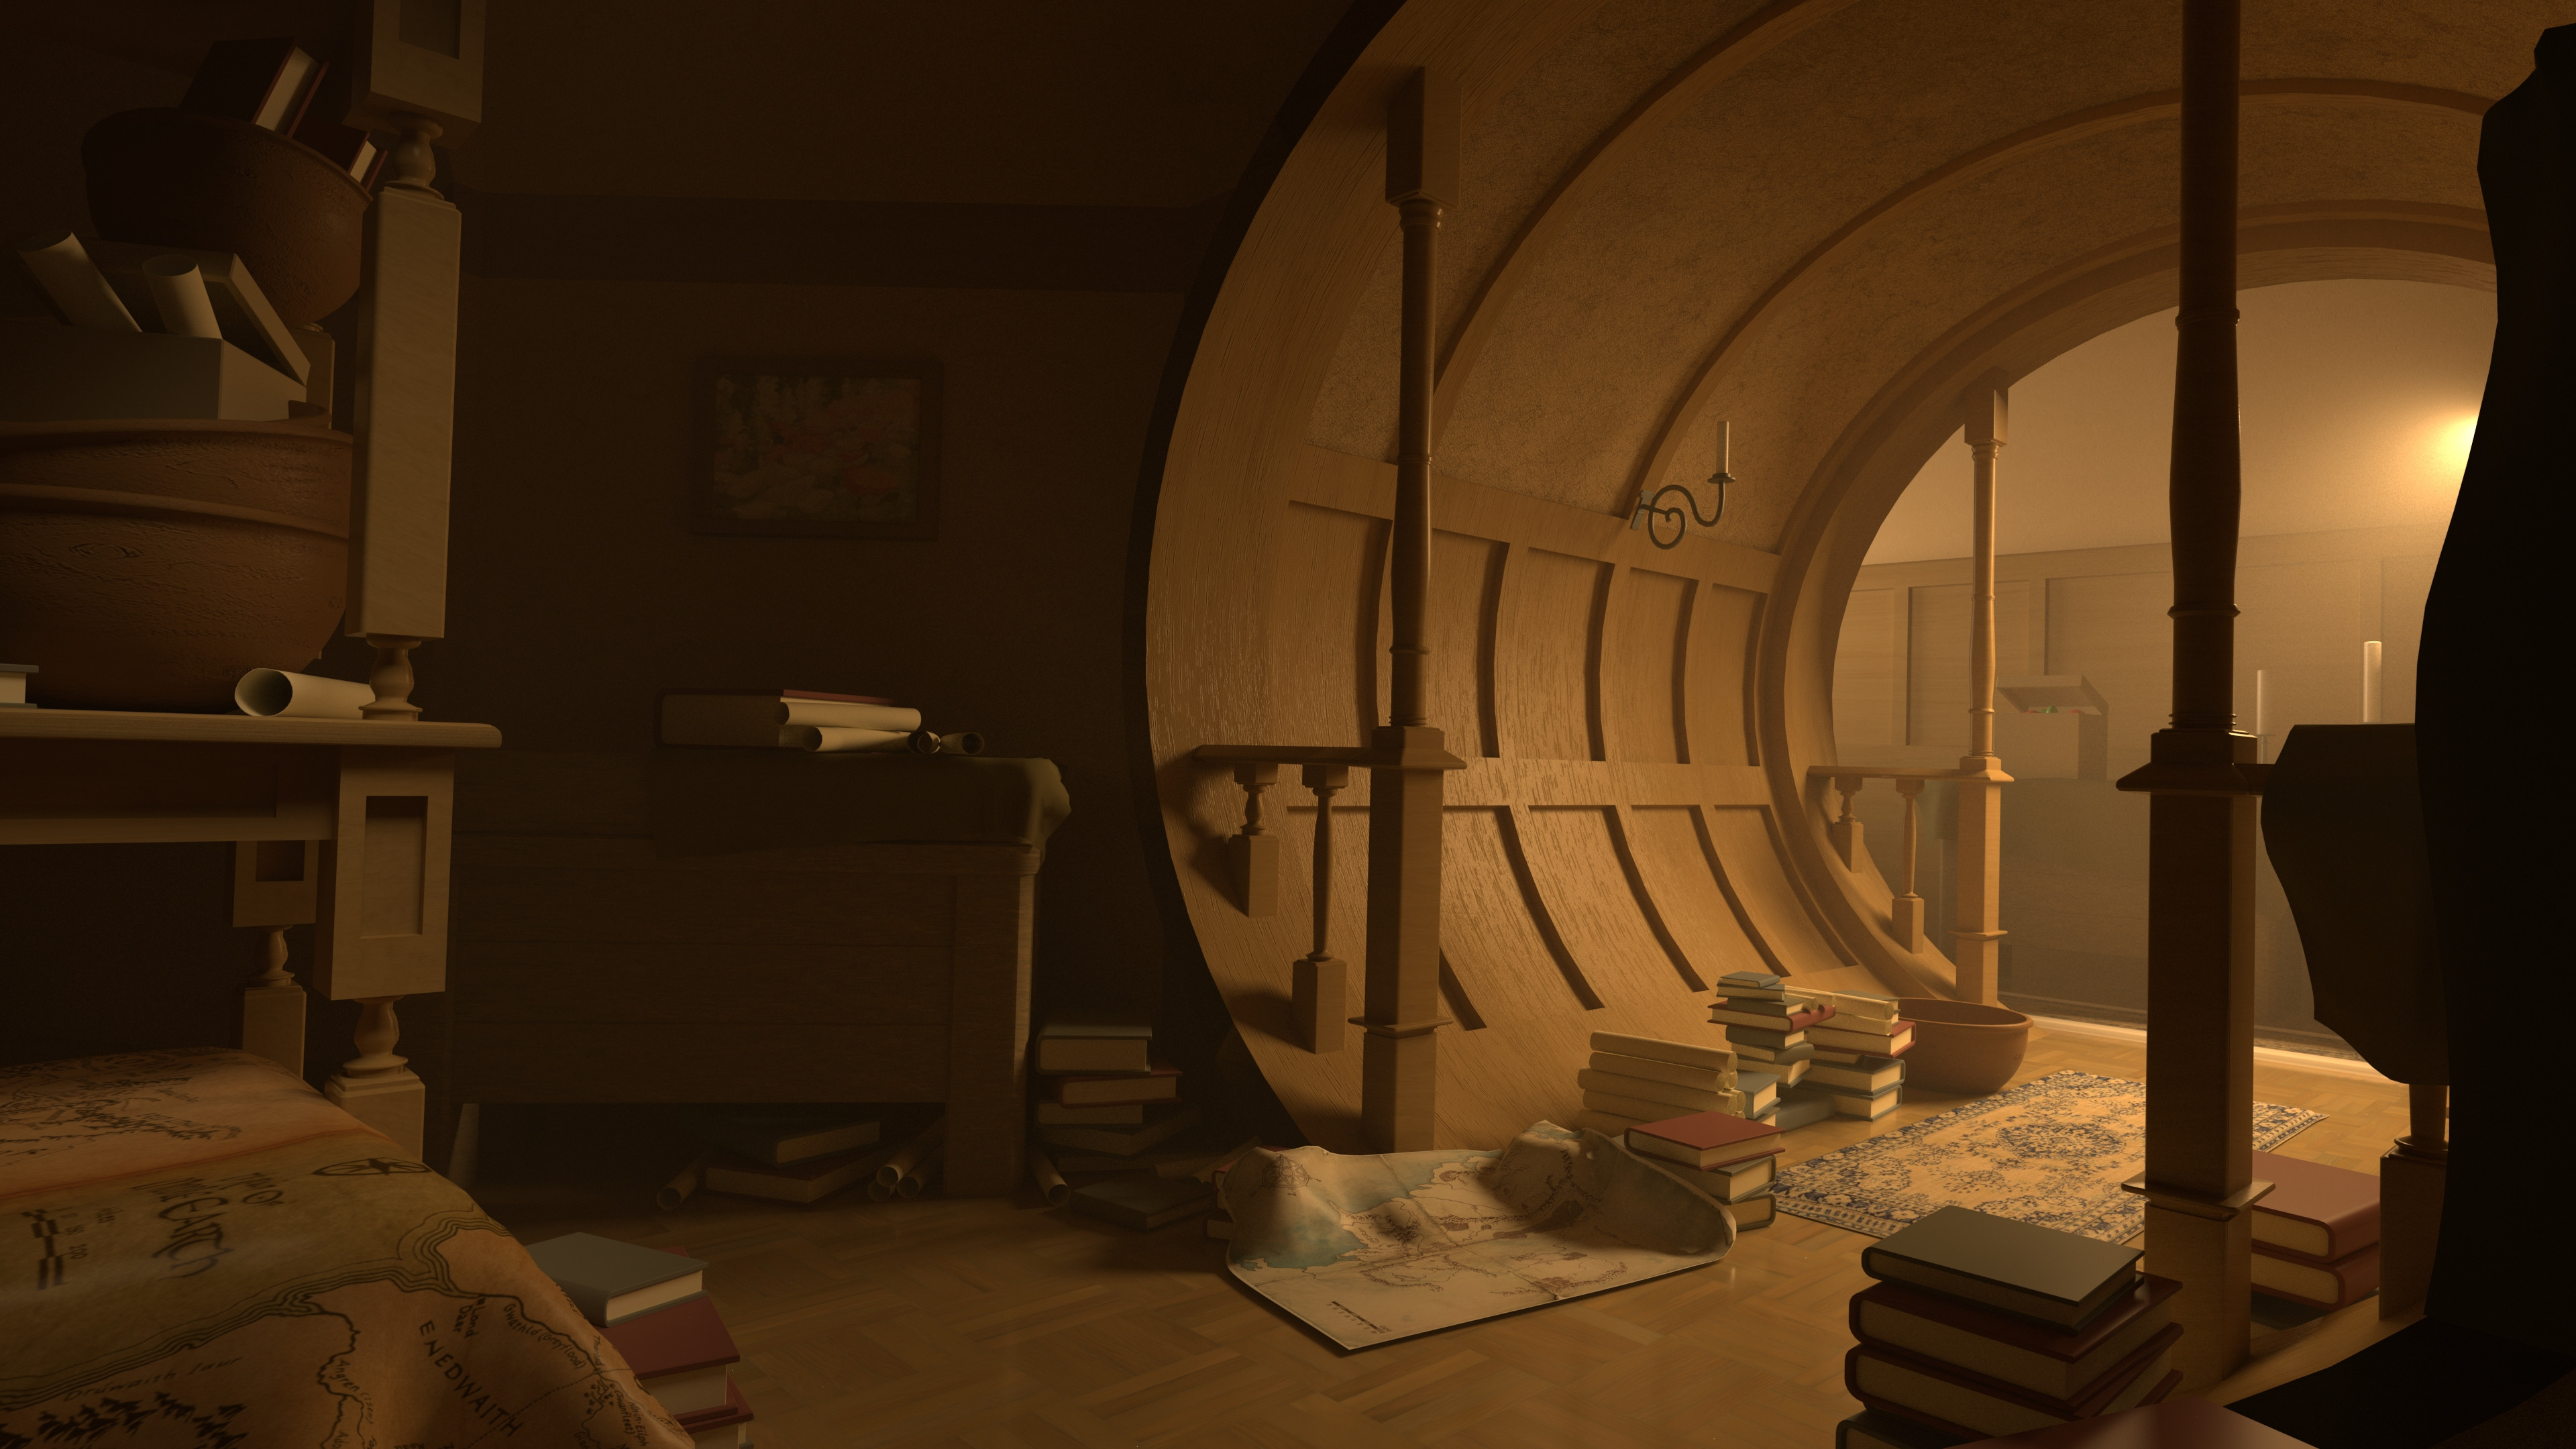 Bag End recreation. The goal was to capture the mood and feel of the scene.